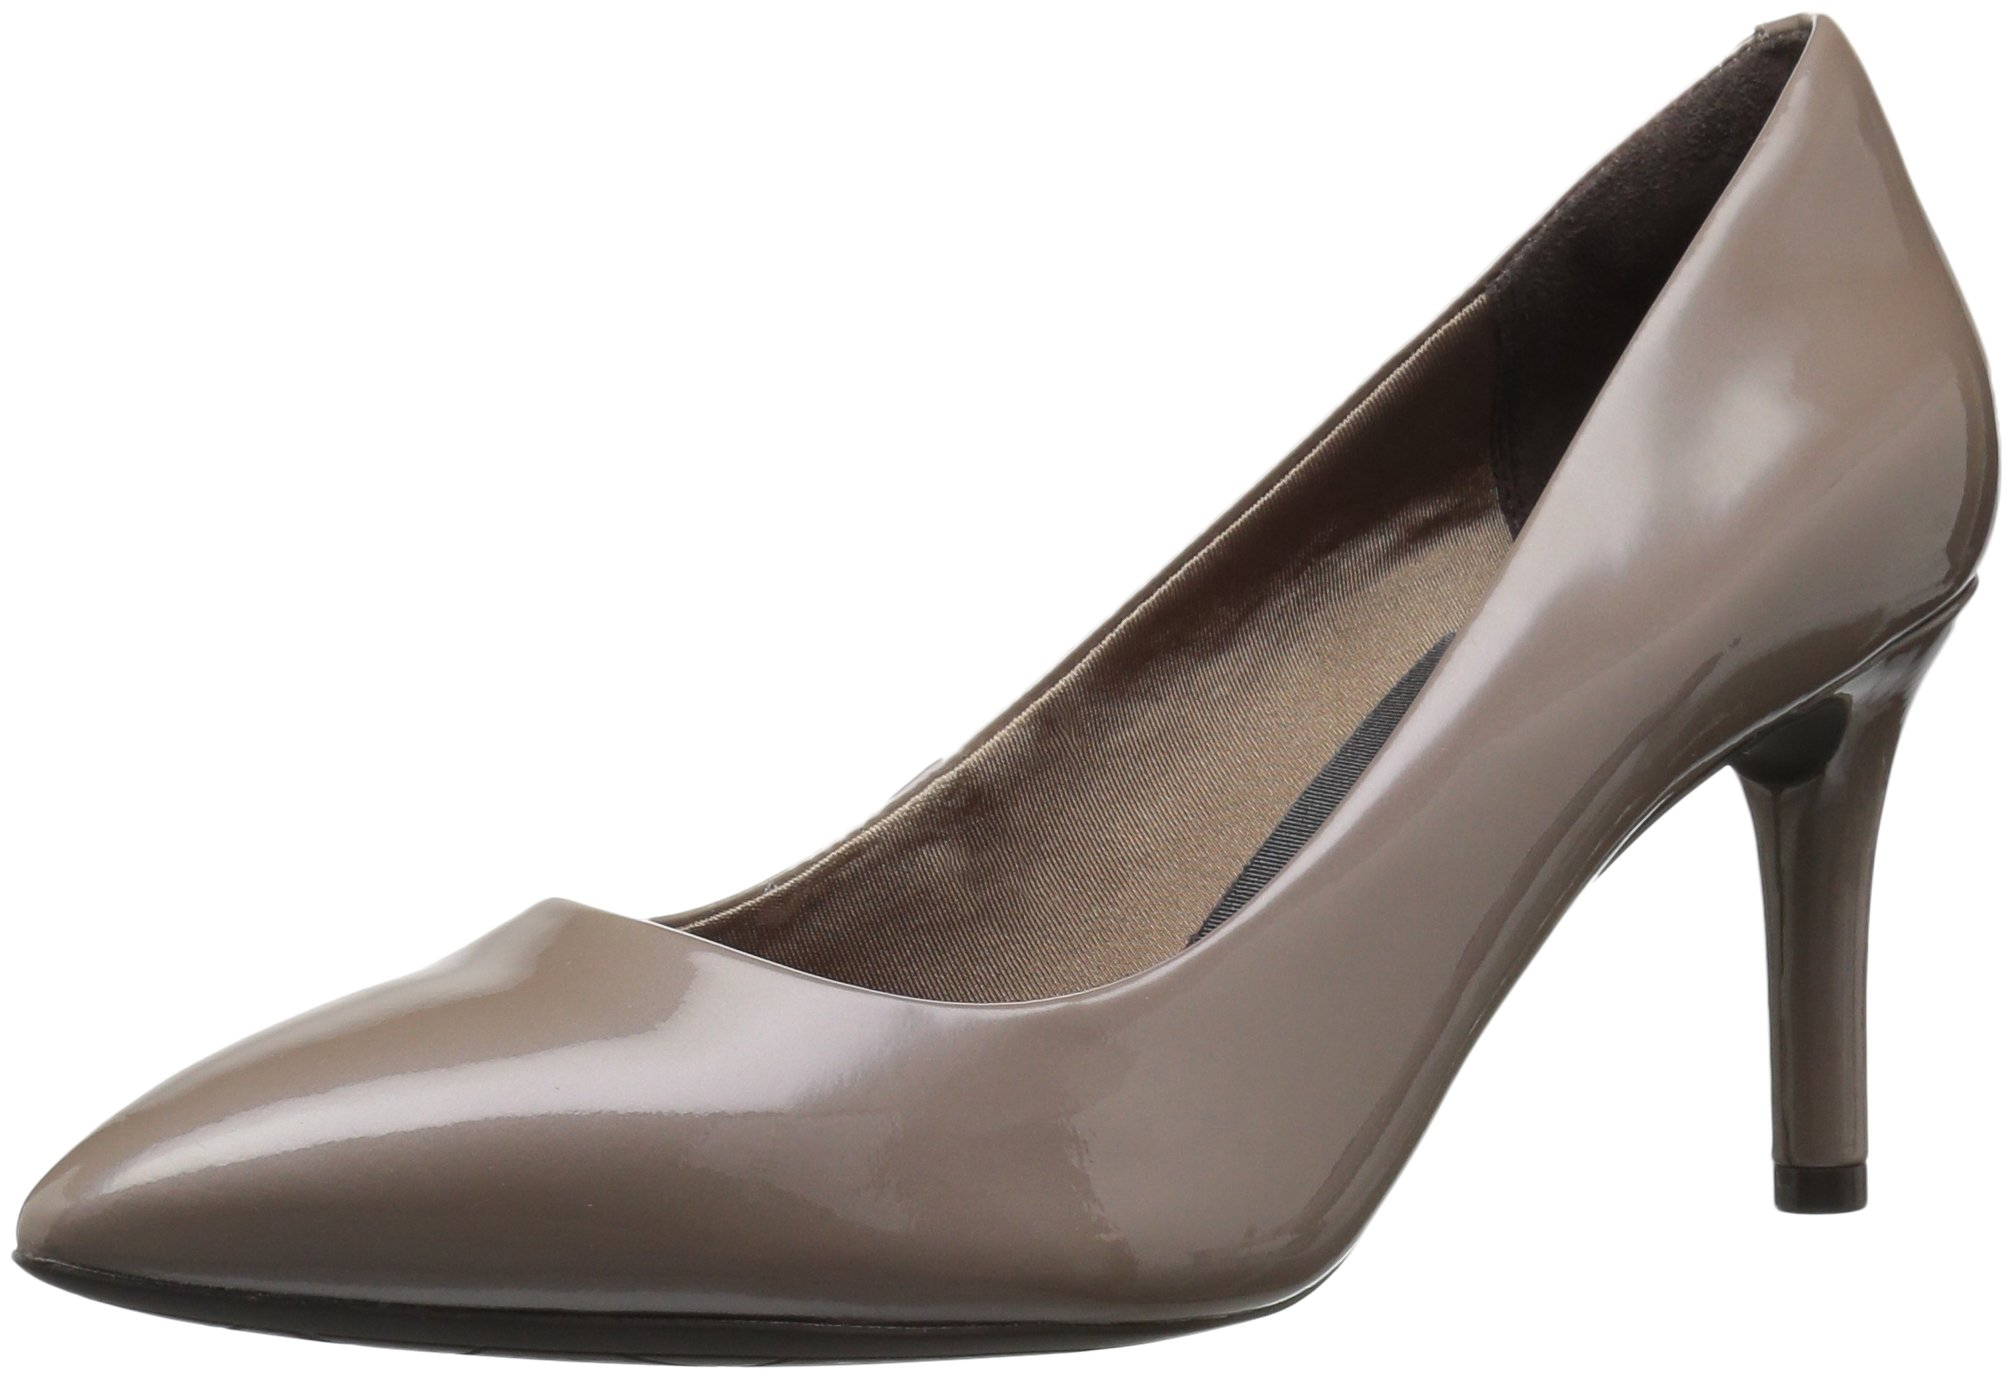 Rockport Women's Total Motion 75mm Pointy Dress Pump, Taupe Grey Patent, 6 W US by Rockport